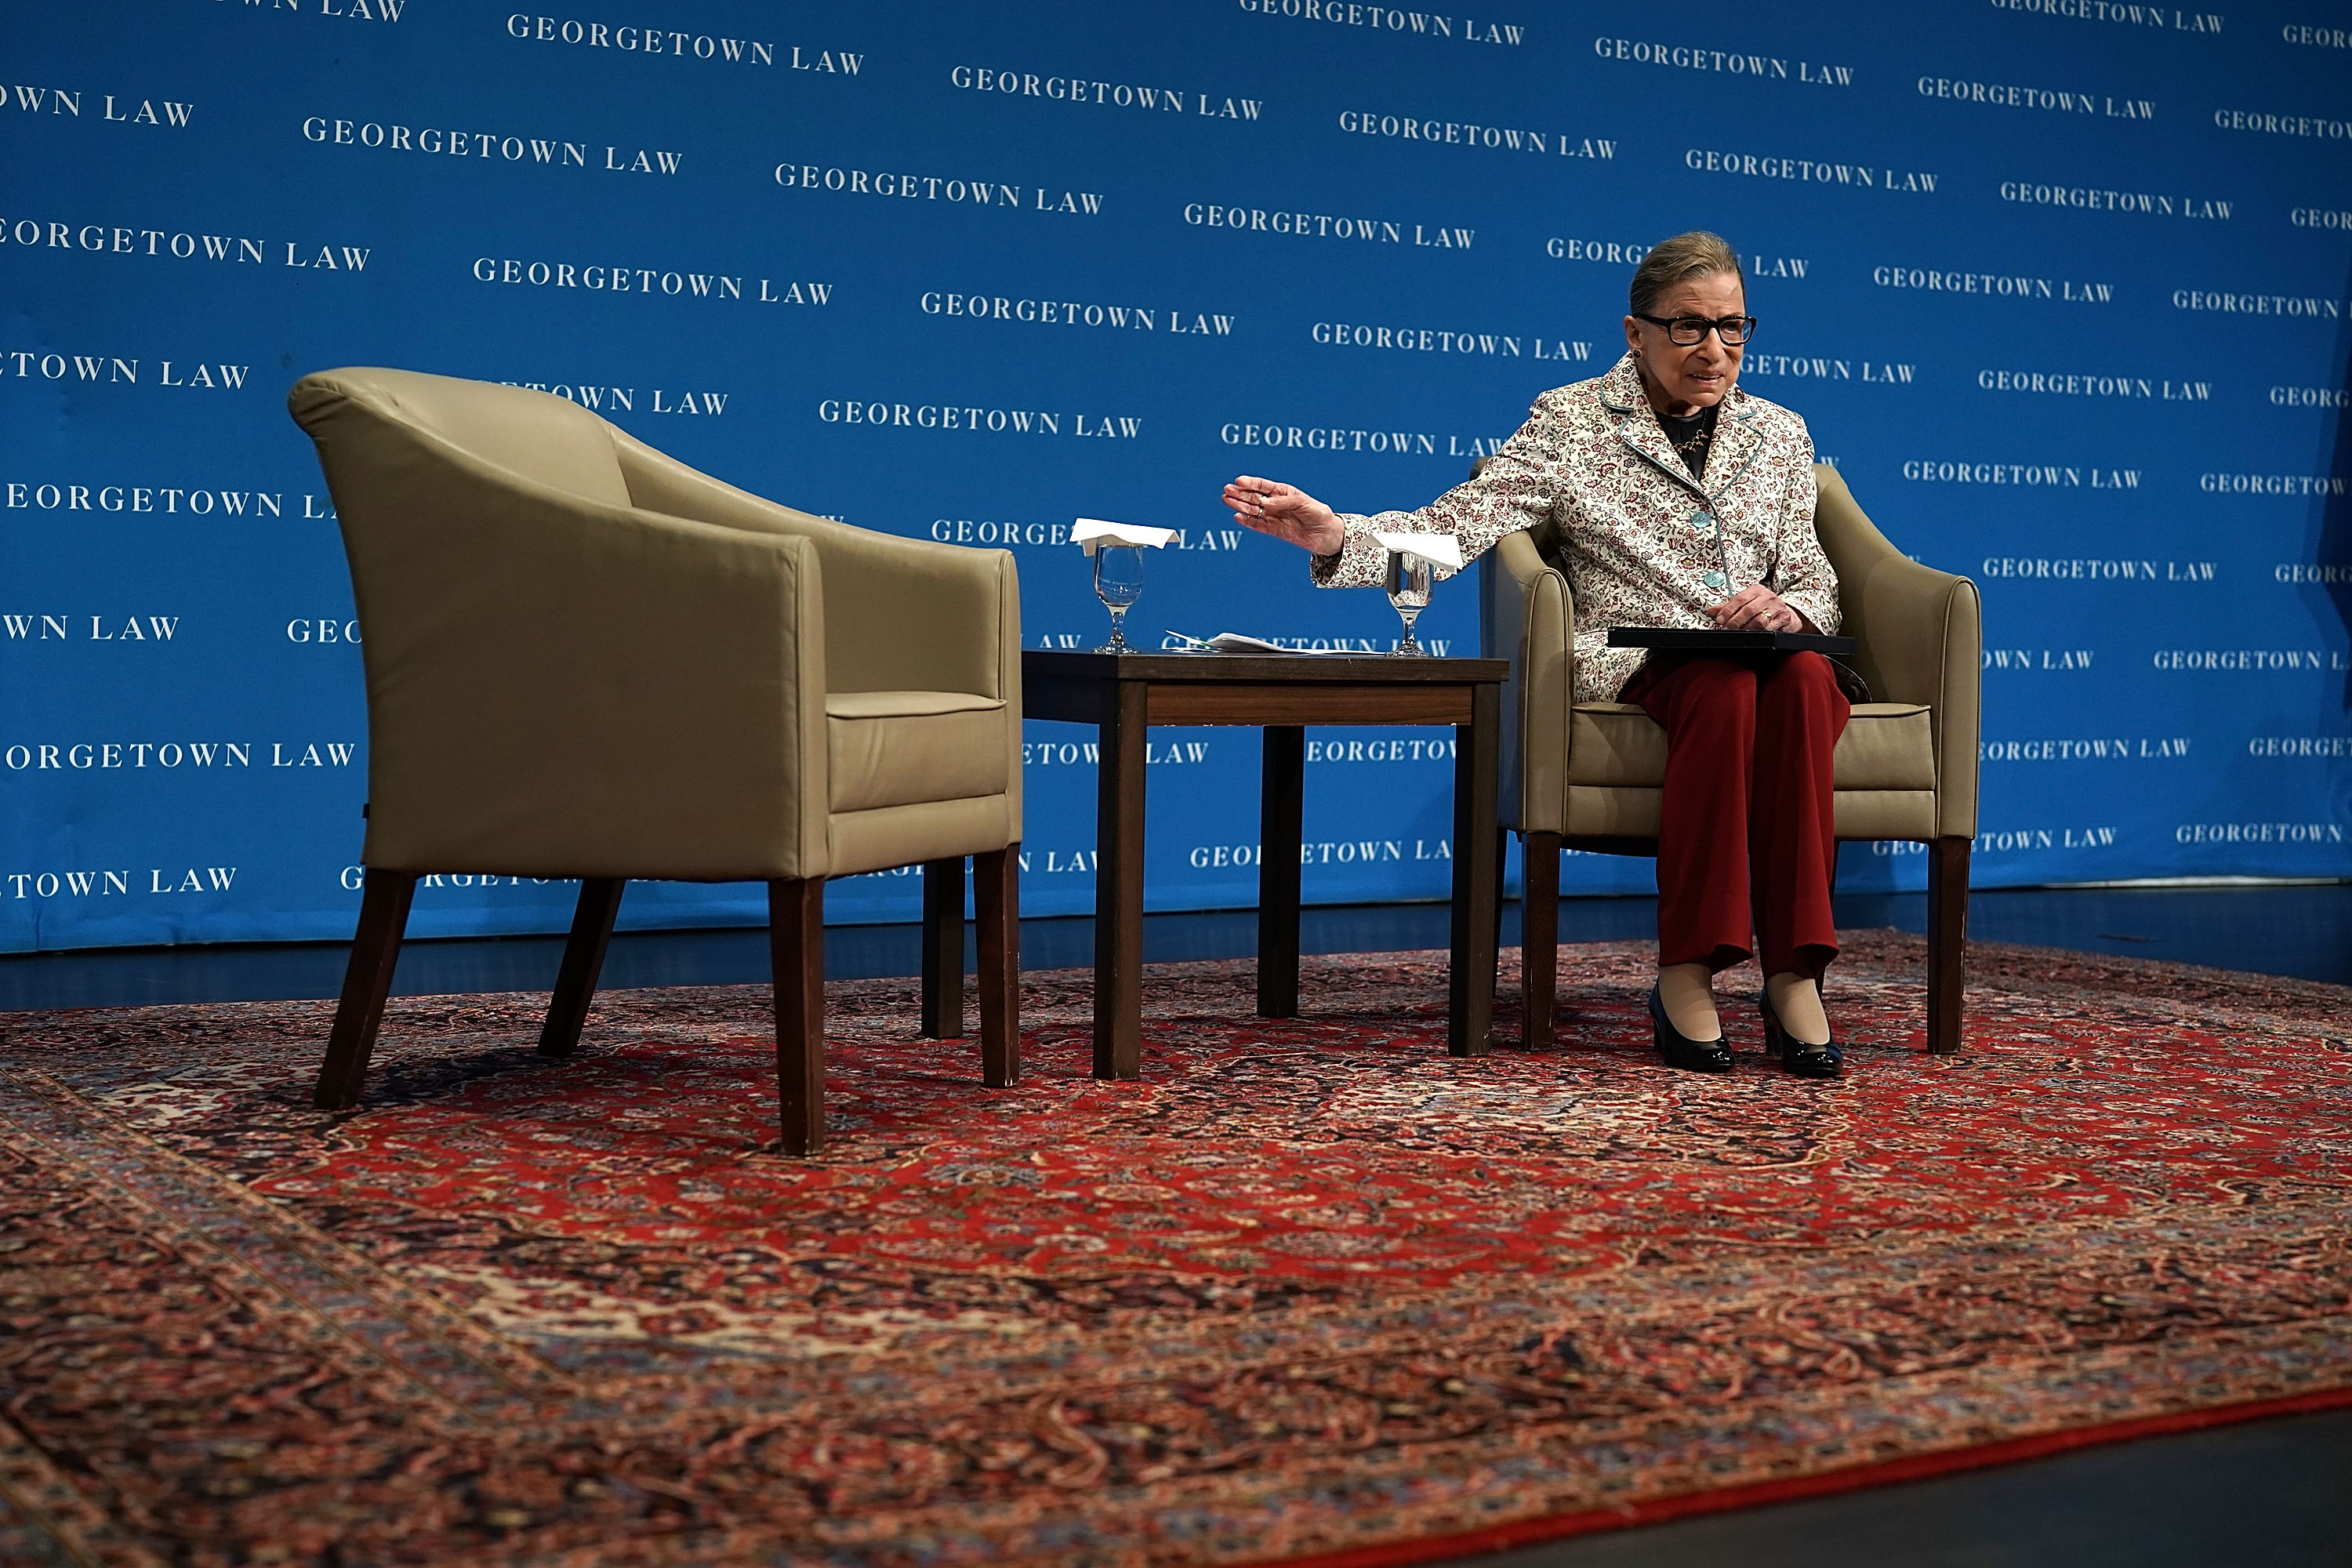 Supreme Court Justice Ruth Bader Ginsburg Gives Lecture At The Georgetown University Law Center